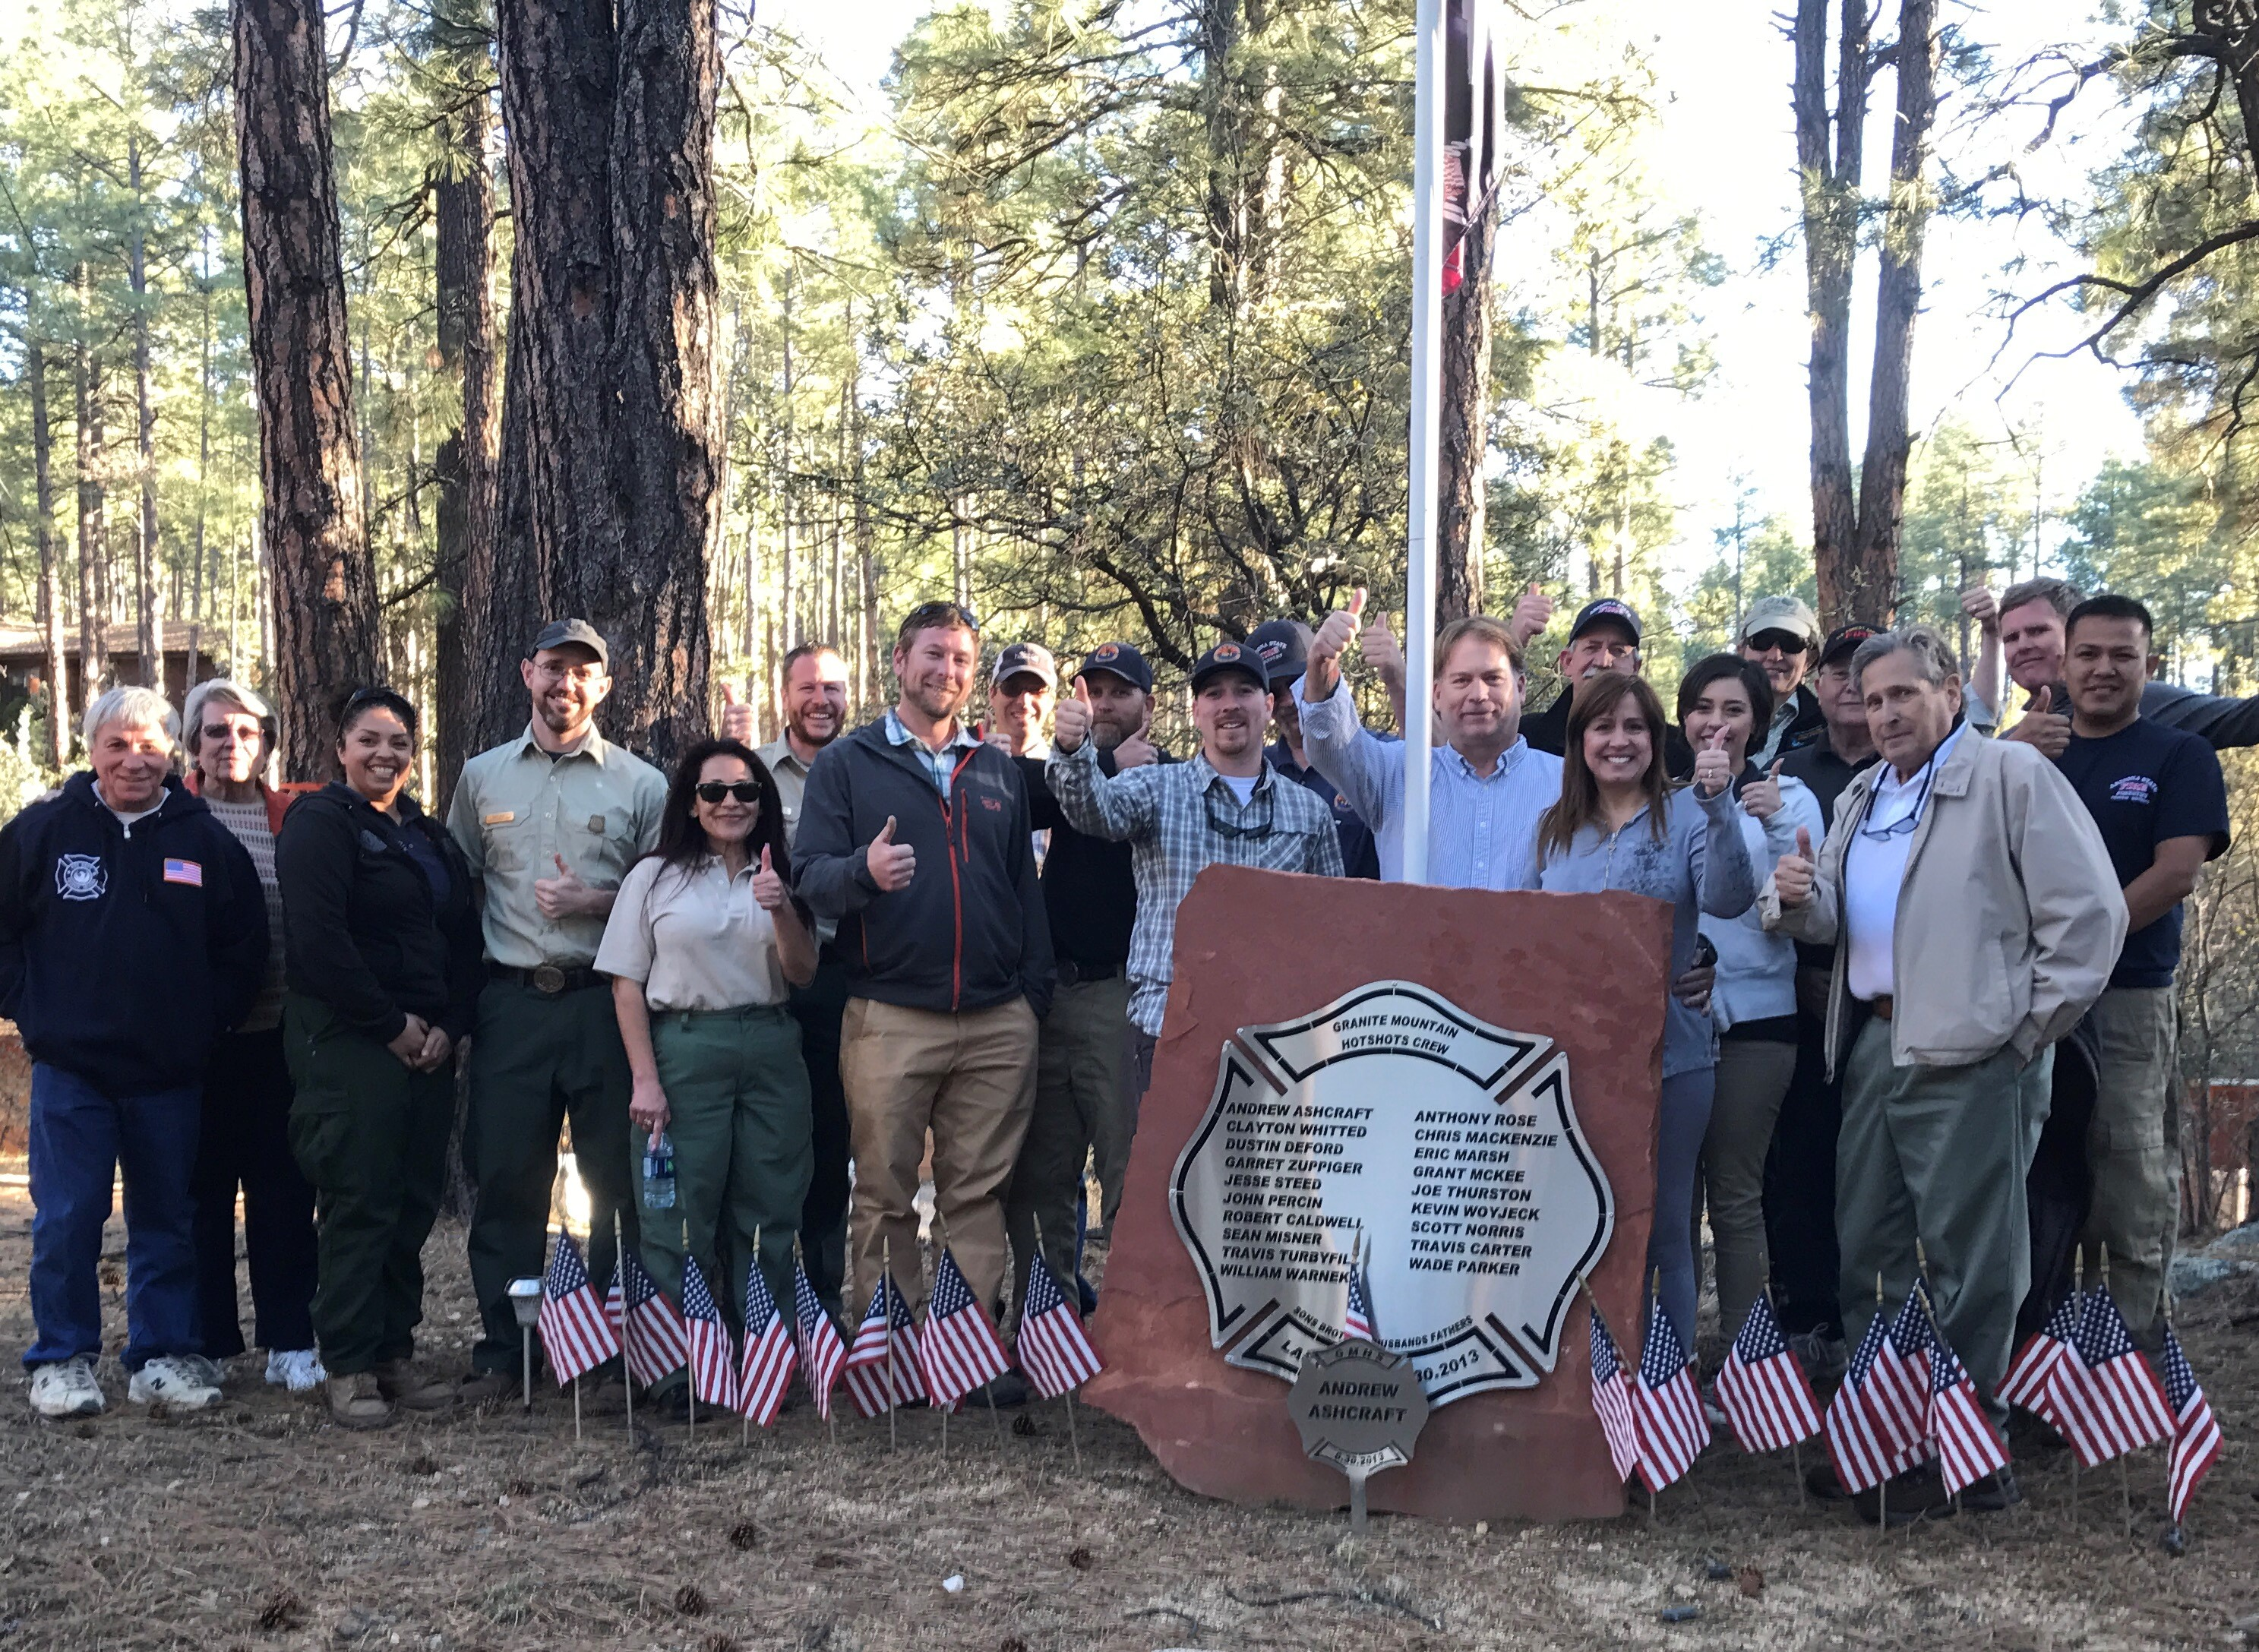 A large group of people gathered around a memorial, located on private land, dedicated to the Granite Mountain Hotshots who perished.